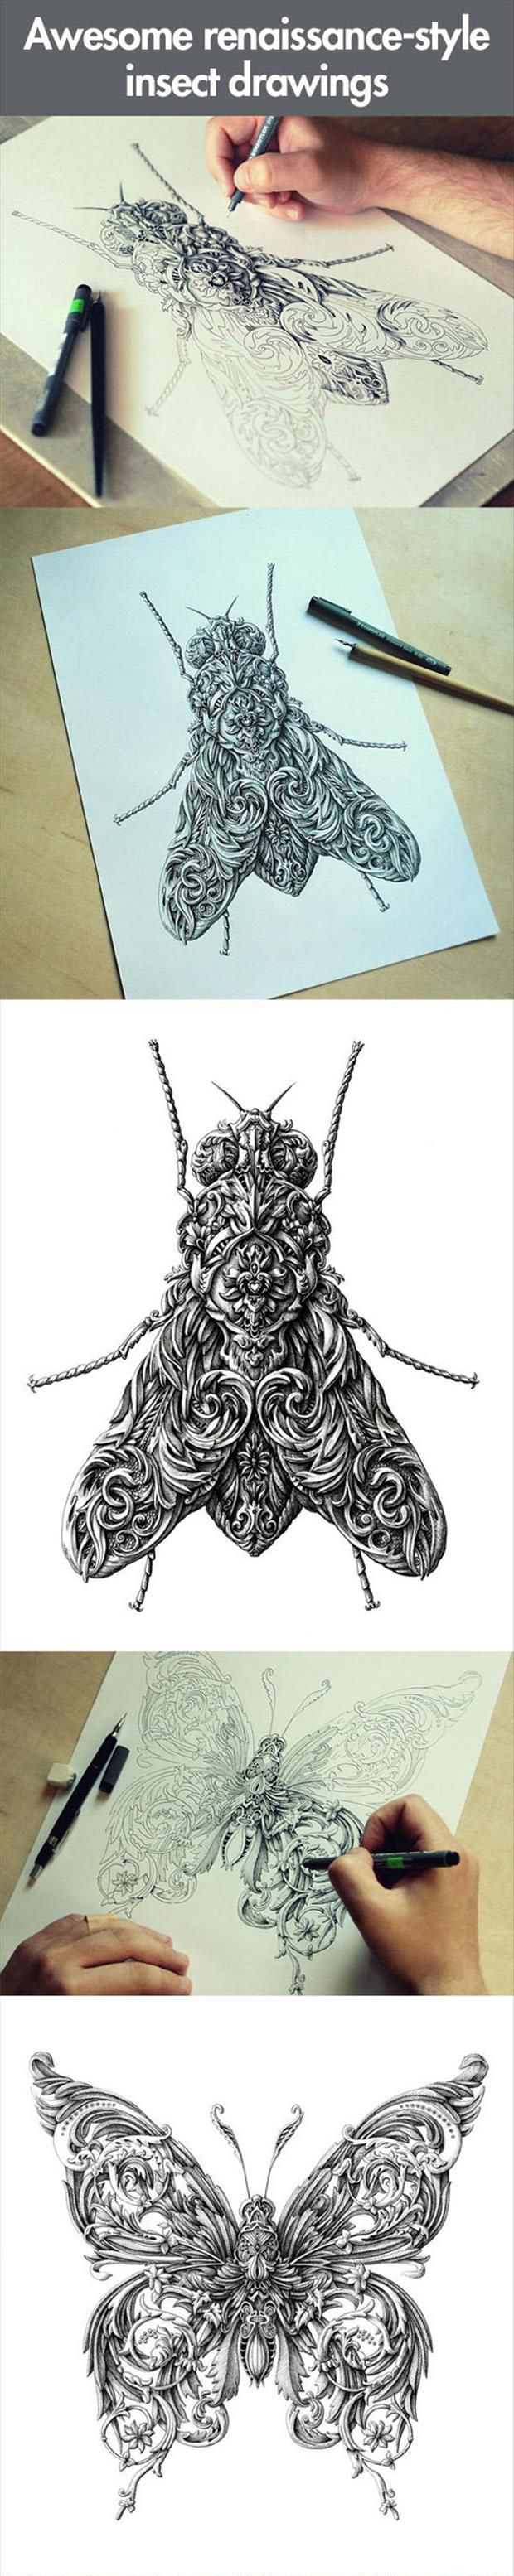 Insect drawing art pinterest insects doodles and art techniques